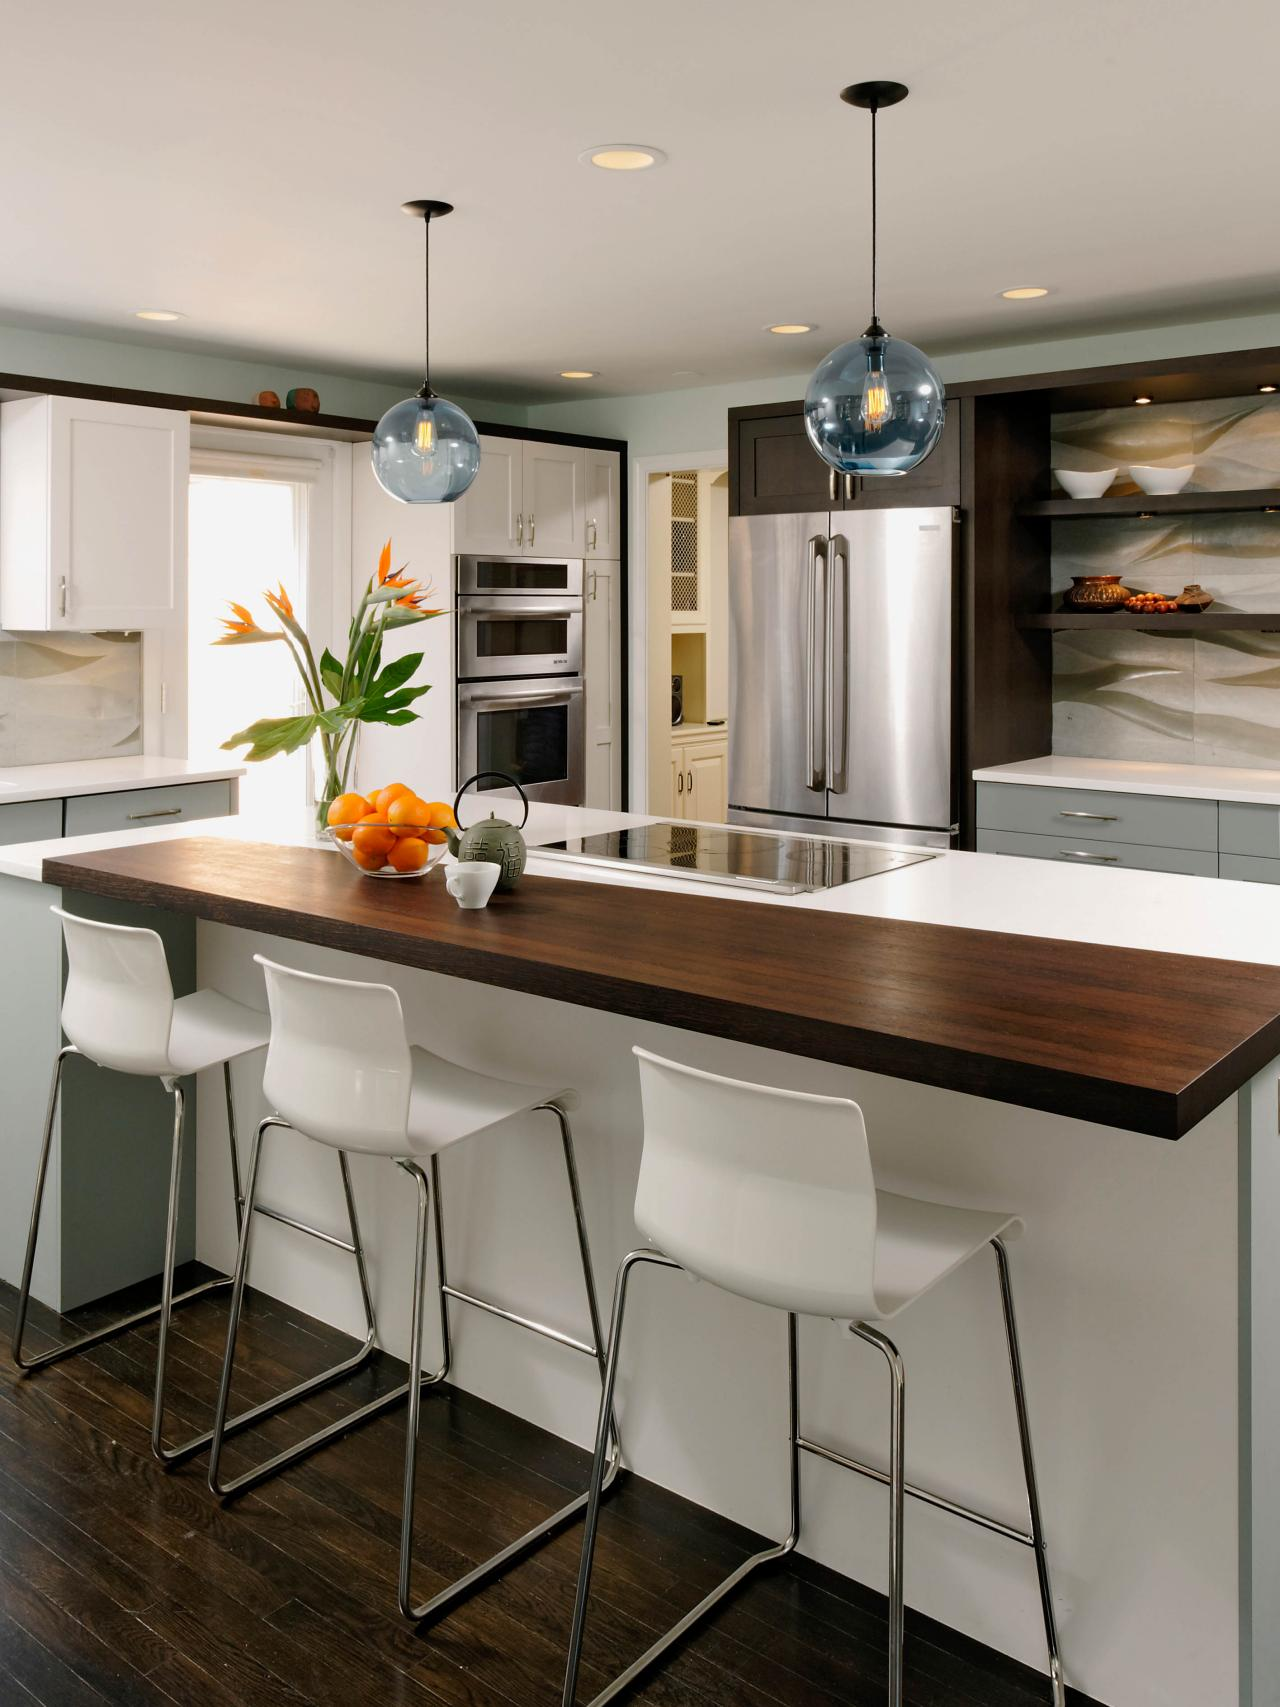 Small Modern Kitchen With Island Small Kitchen Island Ideas Pictures & Tips From Hgtv  Hgtv